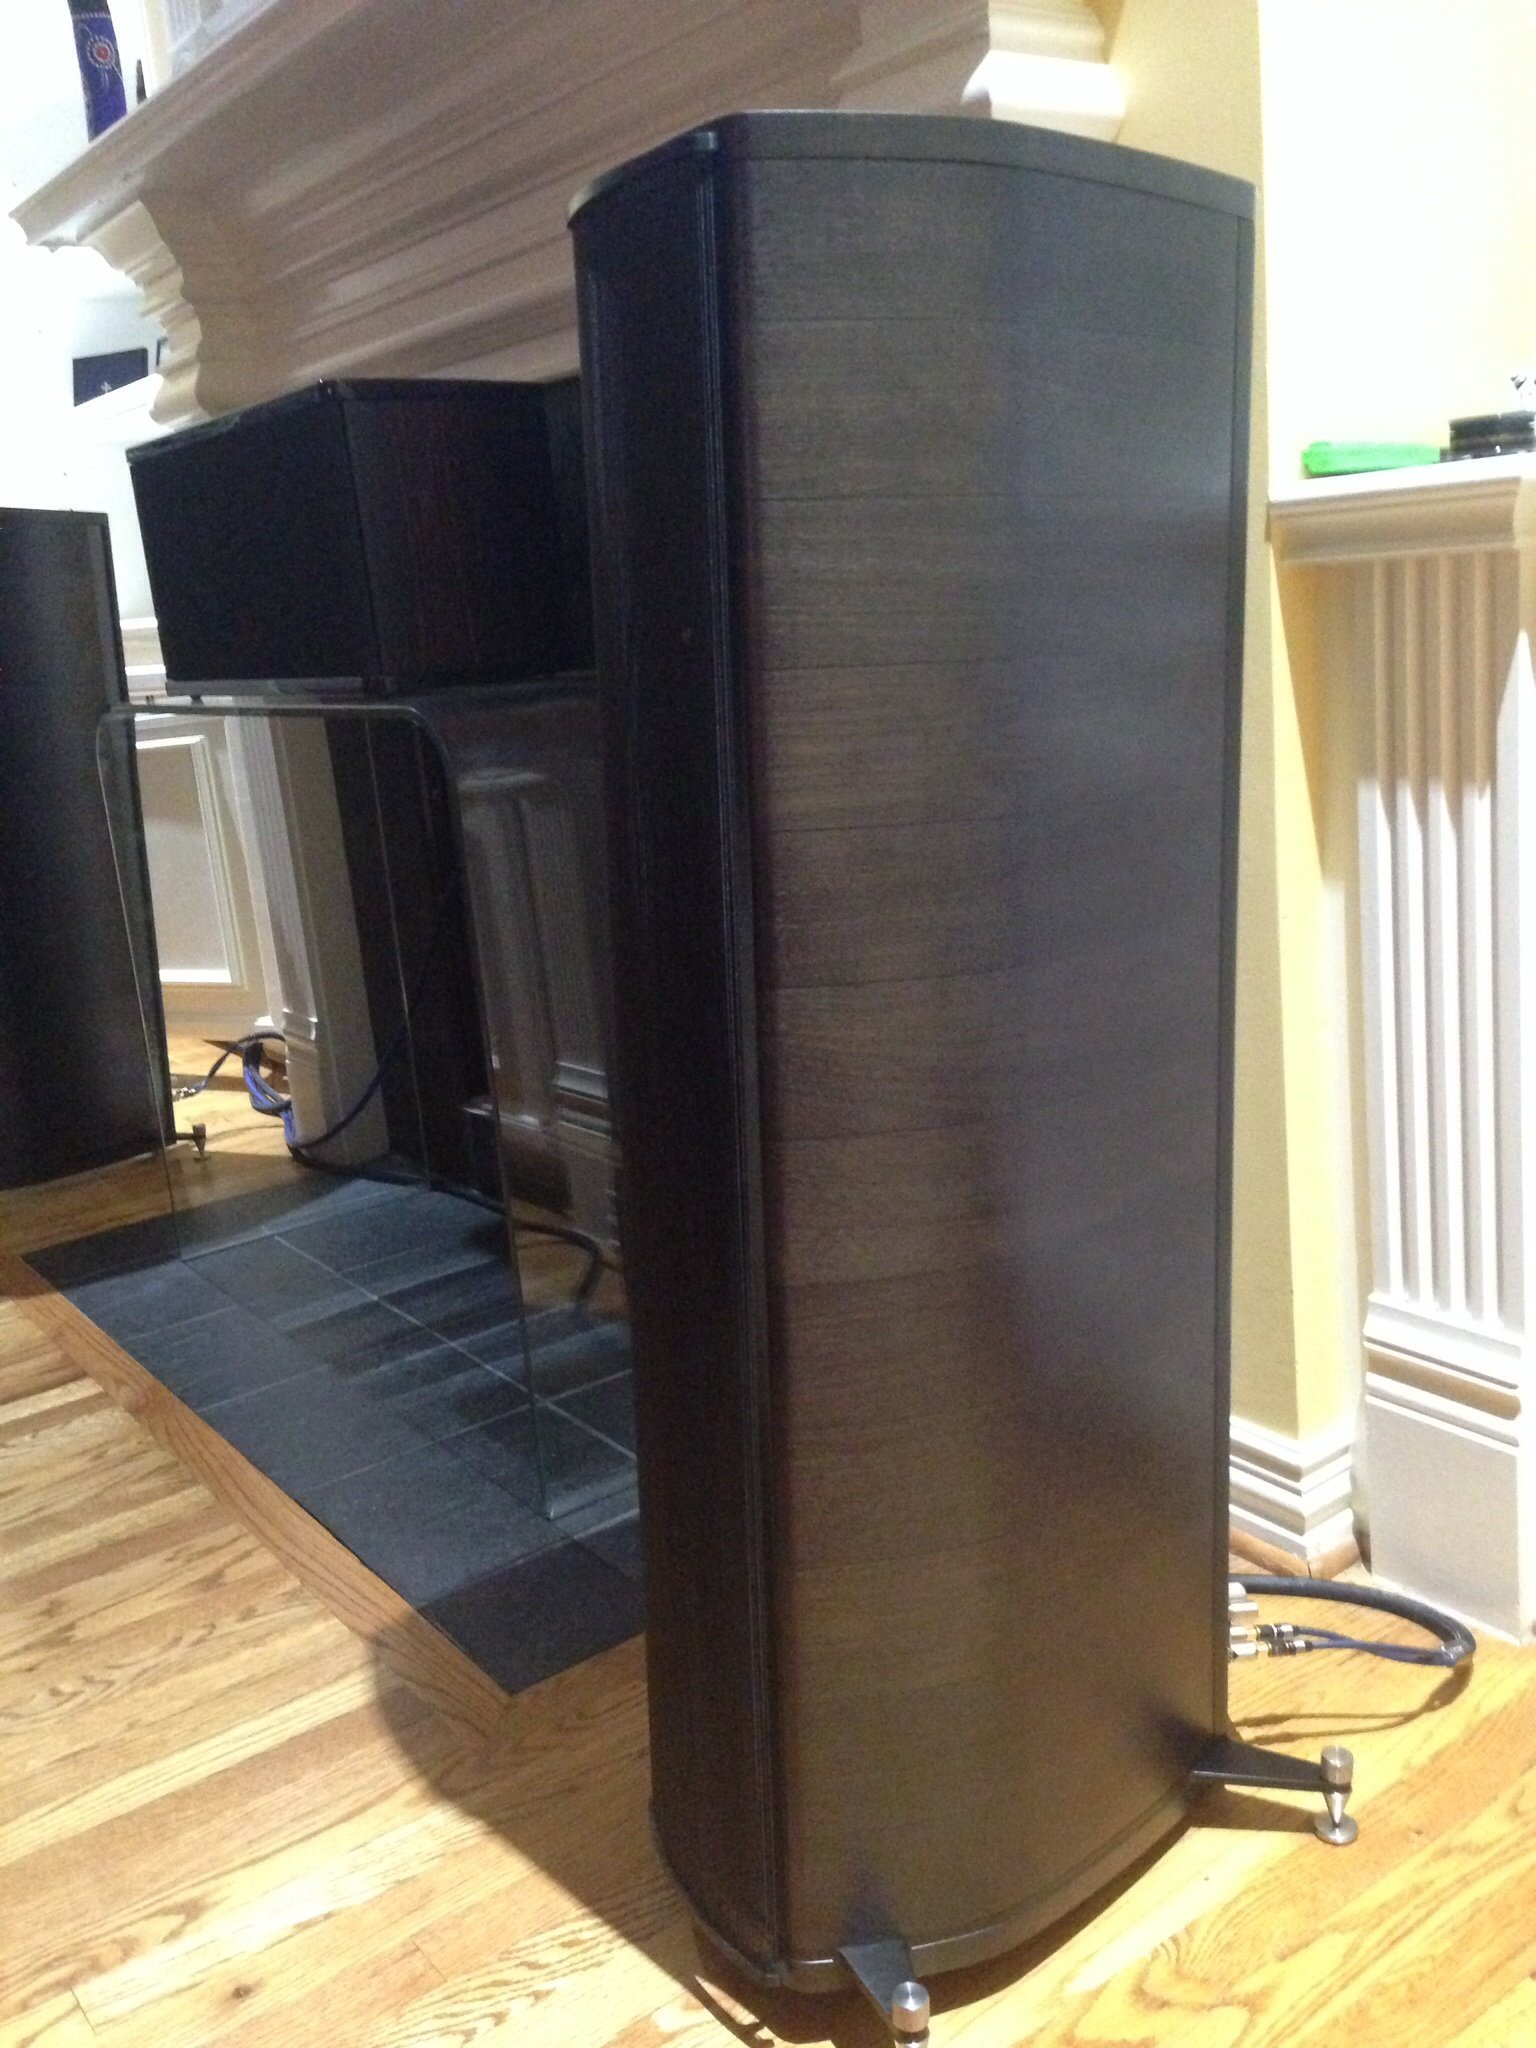 upgrading Rockets 750s - Sonus Faber Olympica III or B&W